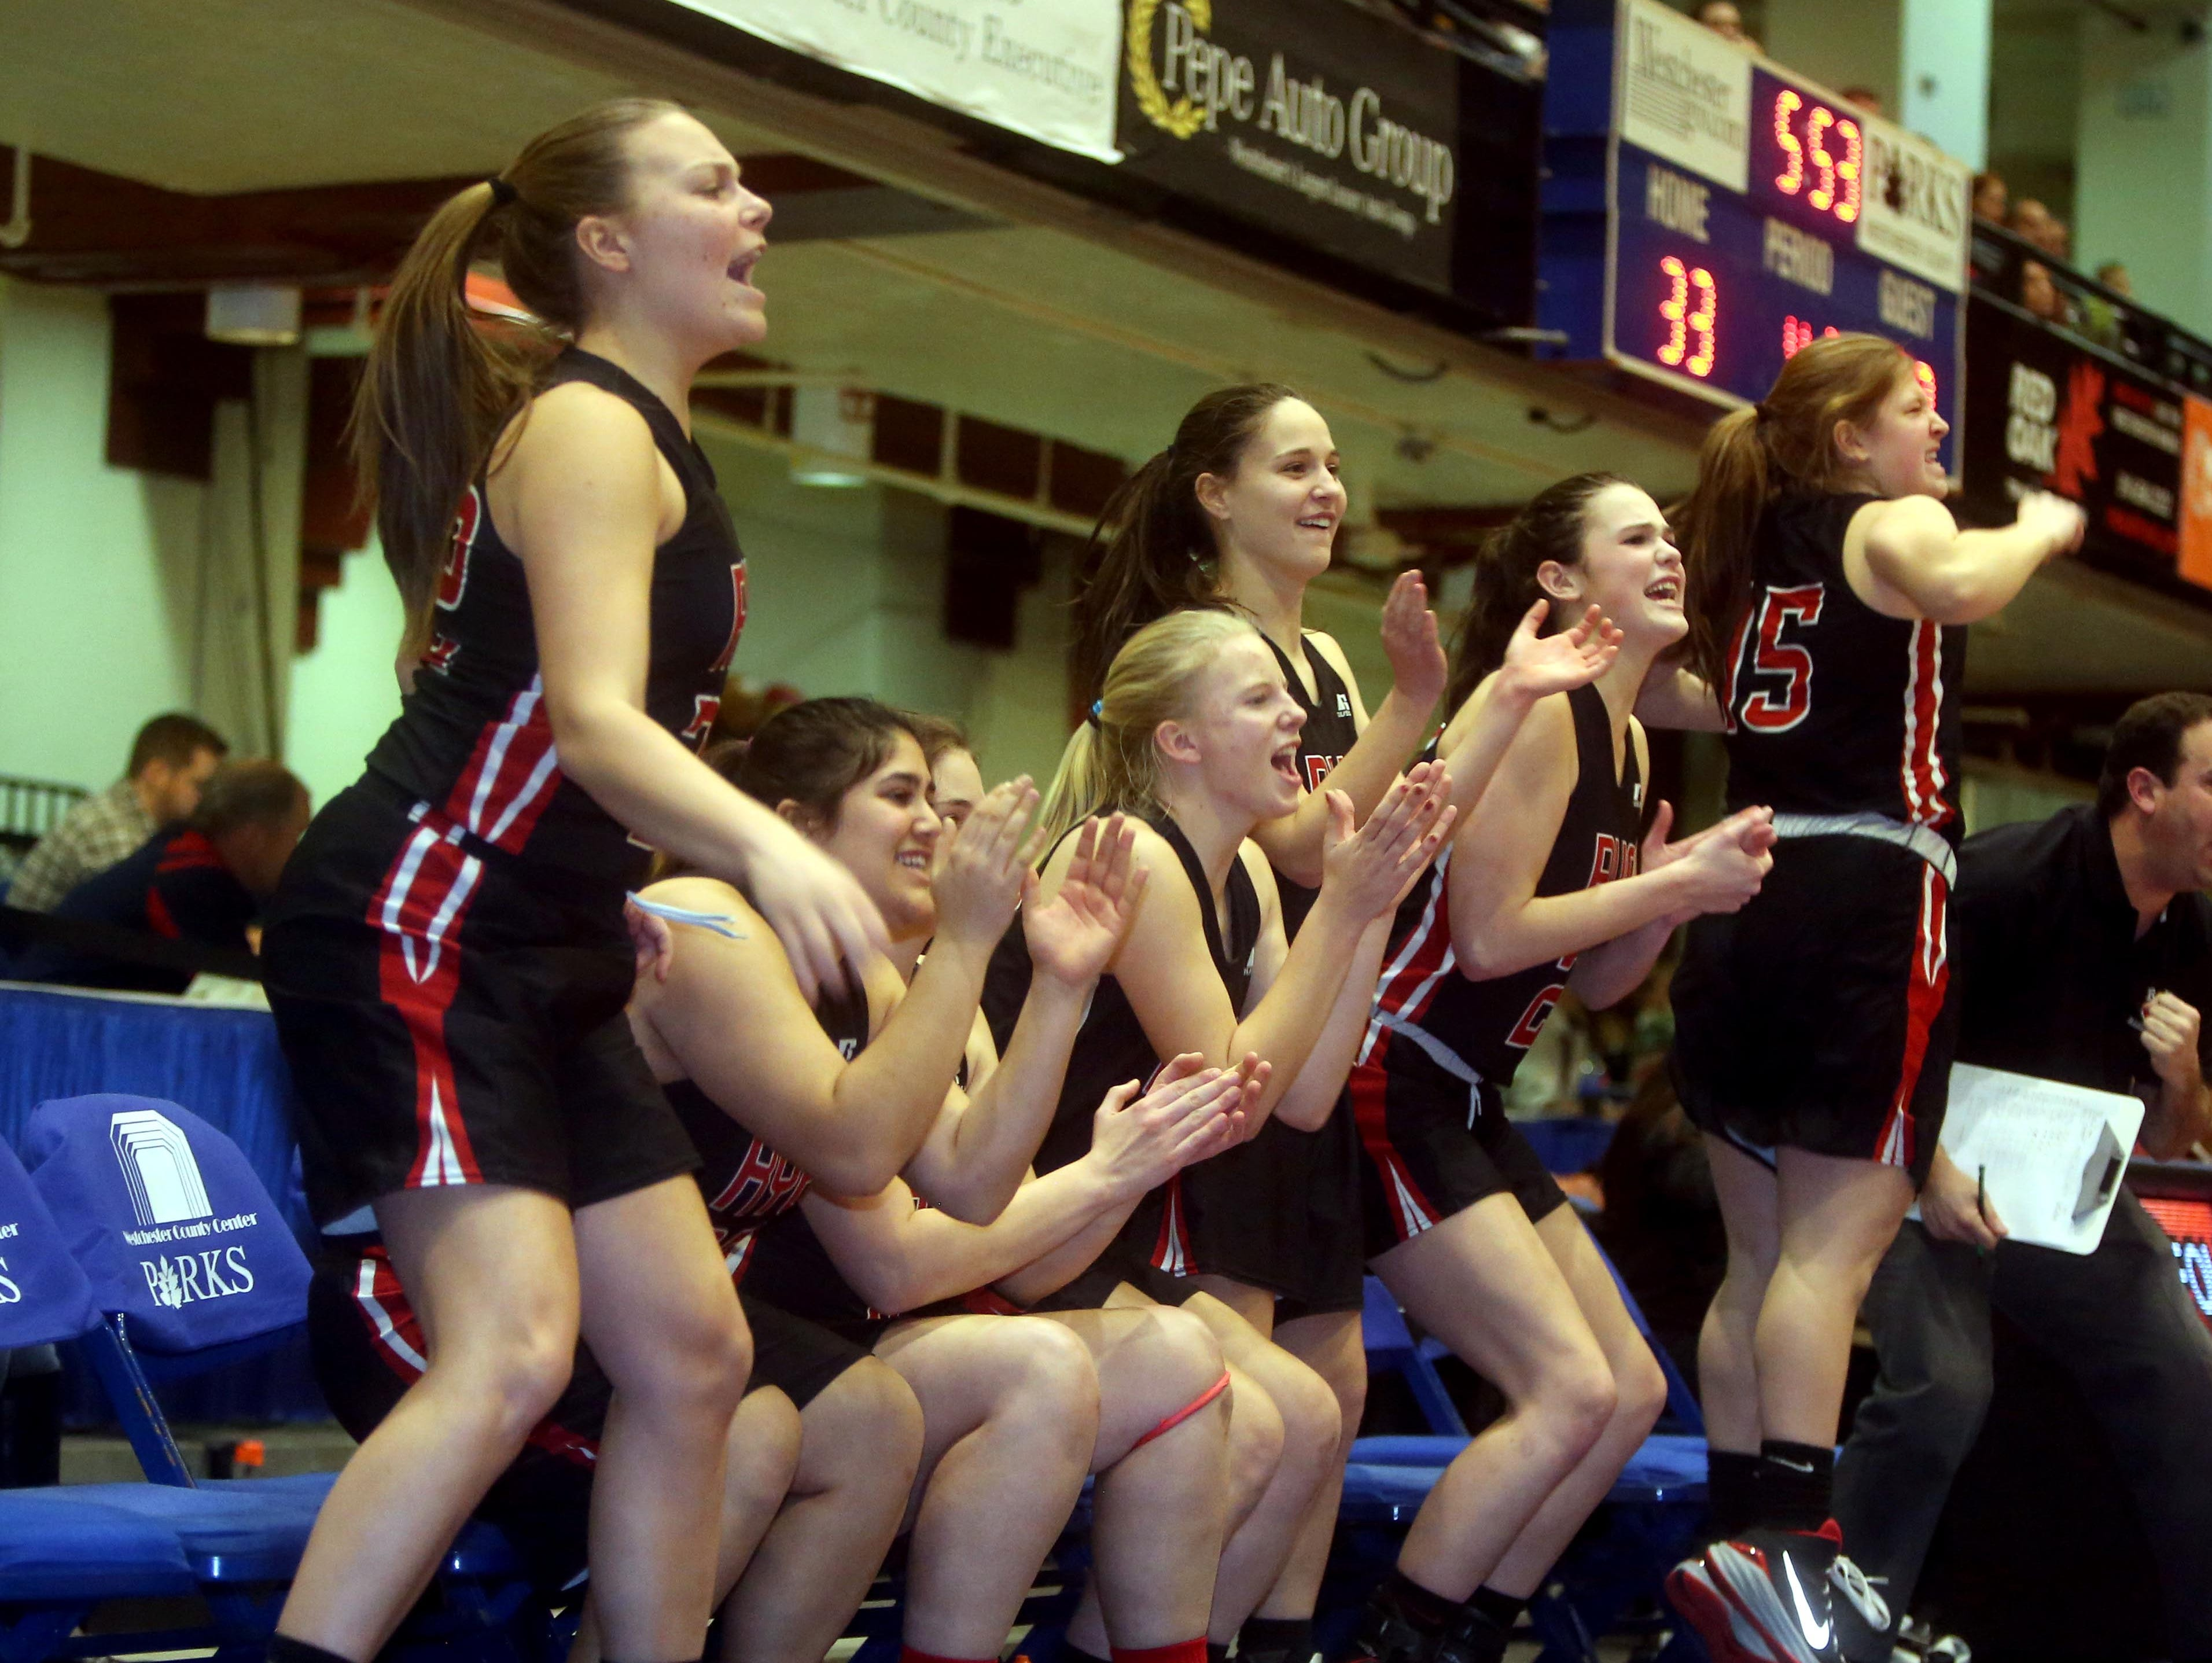 westchester girls Westchester putnam women's basketball officials association, eastchester announcements: the wpwboa annual dinner will be.